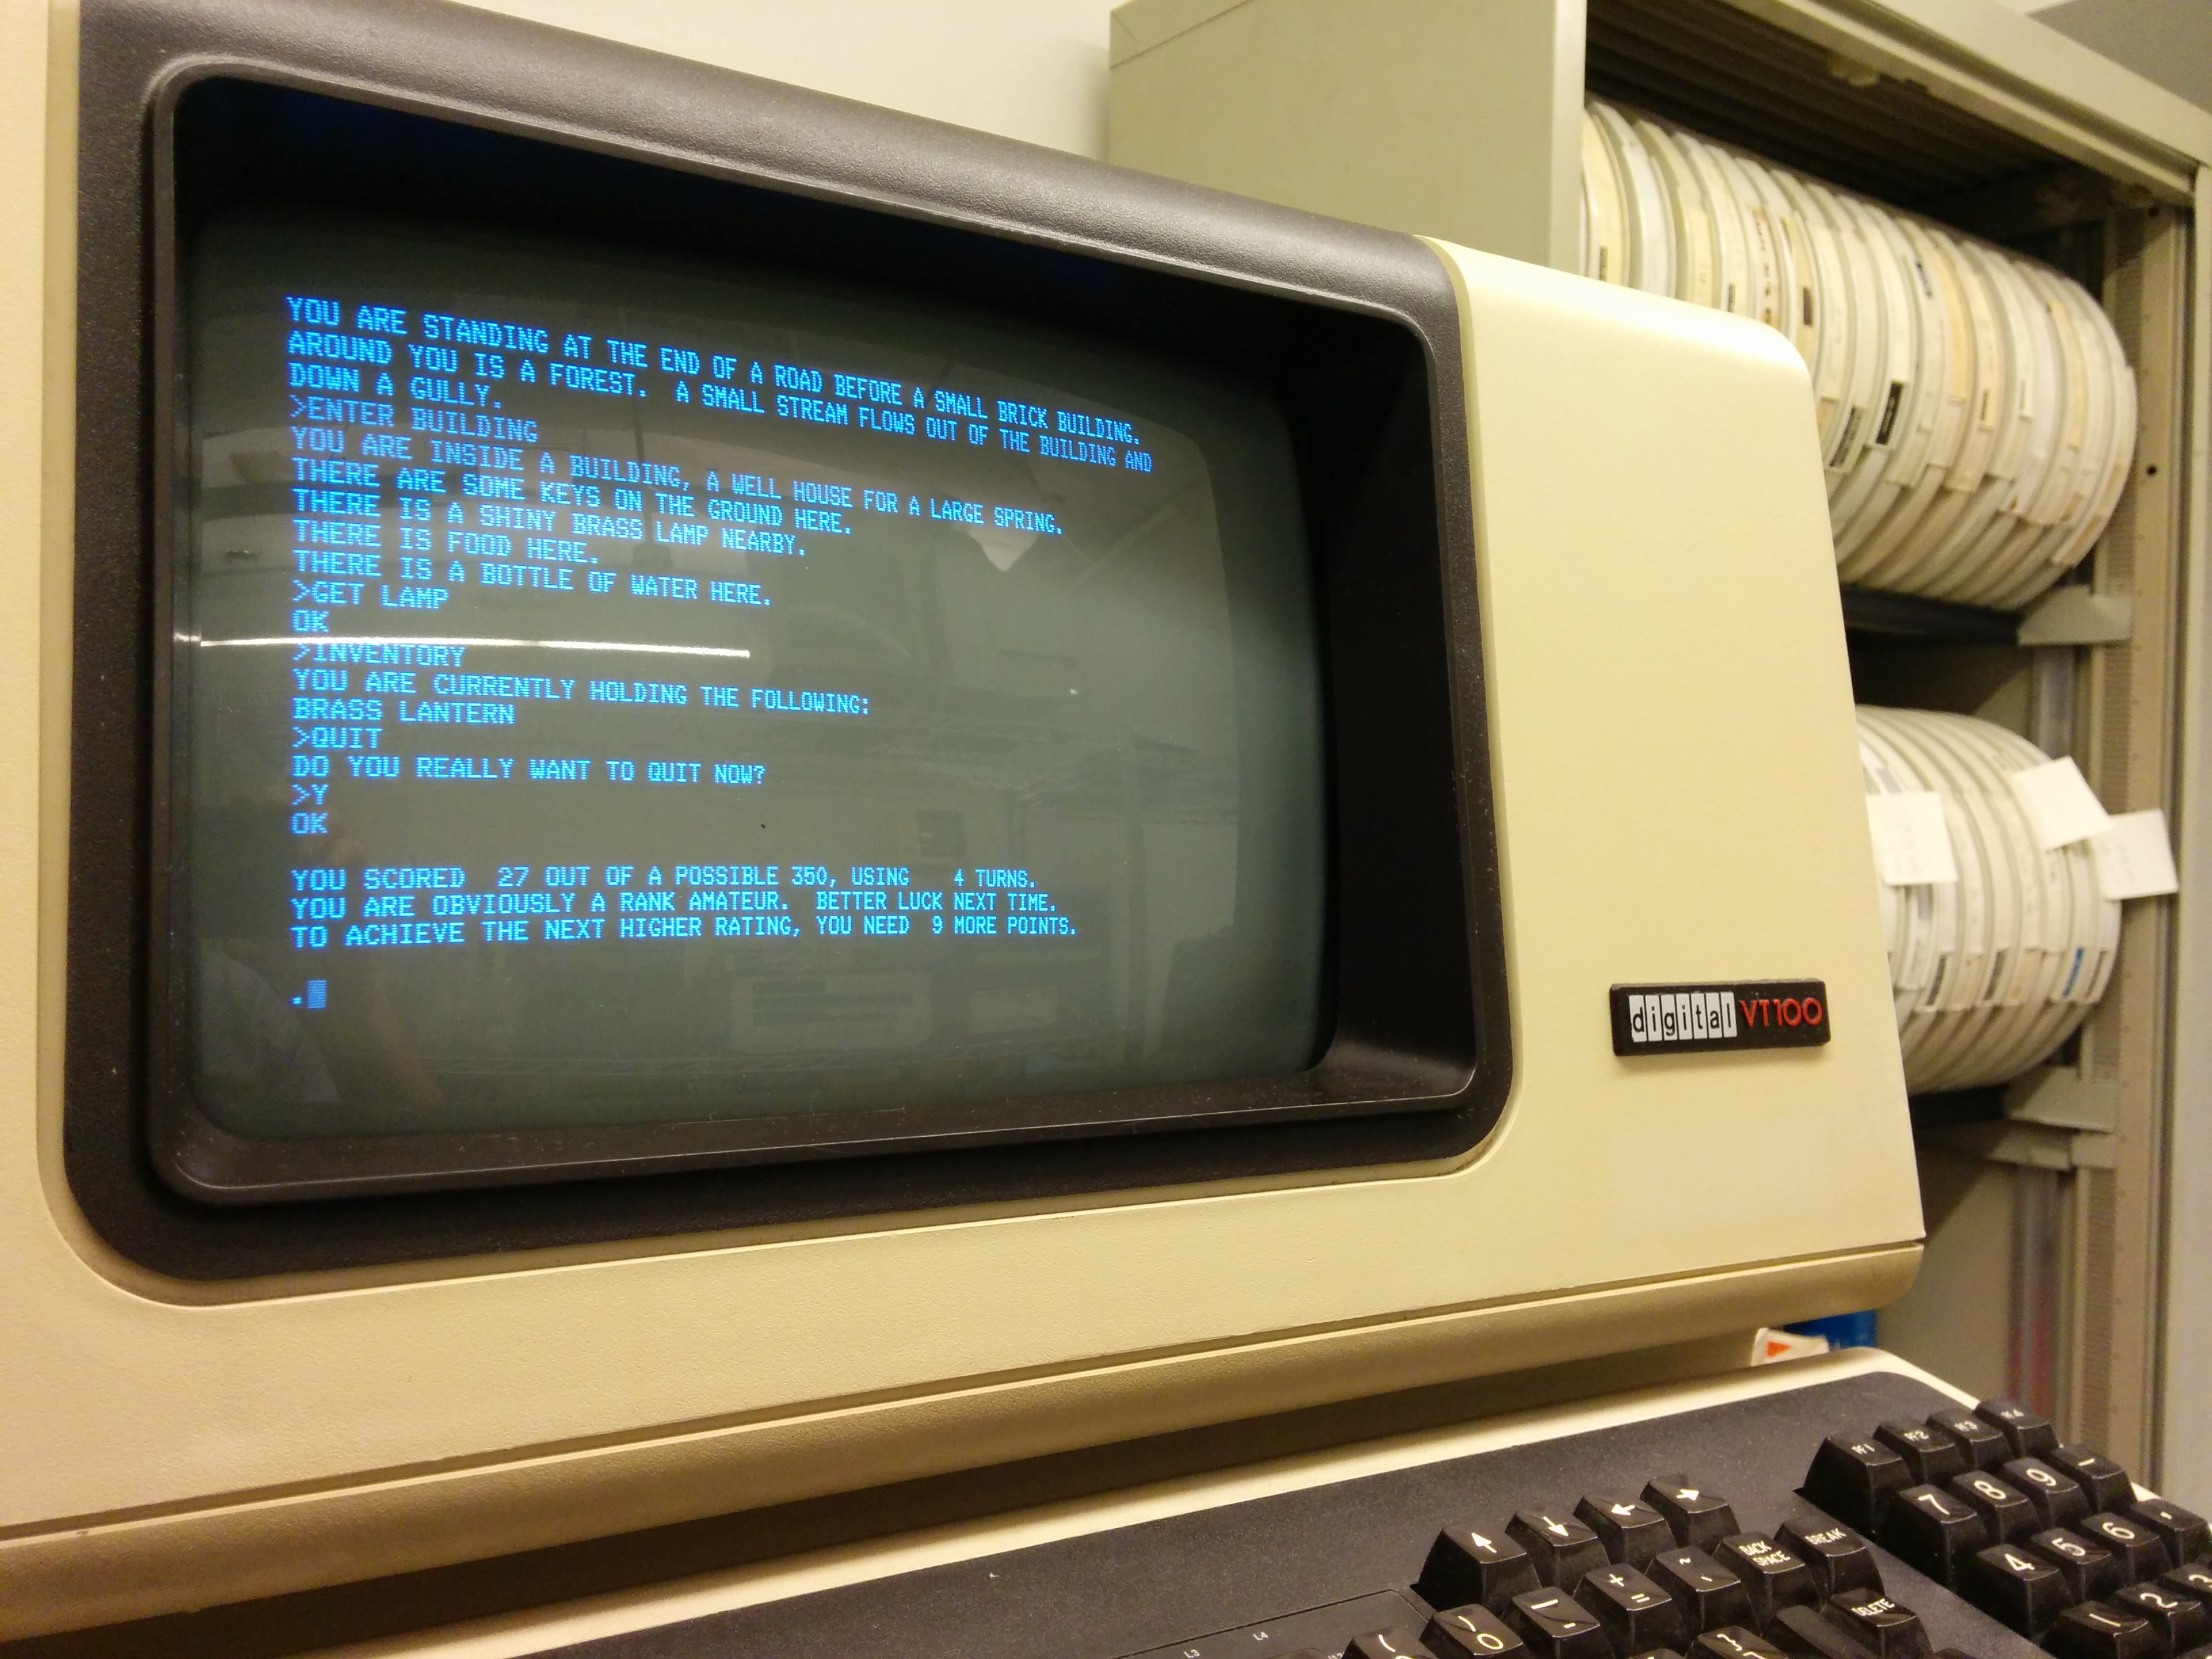 Colossal_Cave_Adventure_on_VT100_terminal.jpg